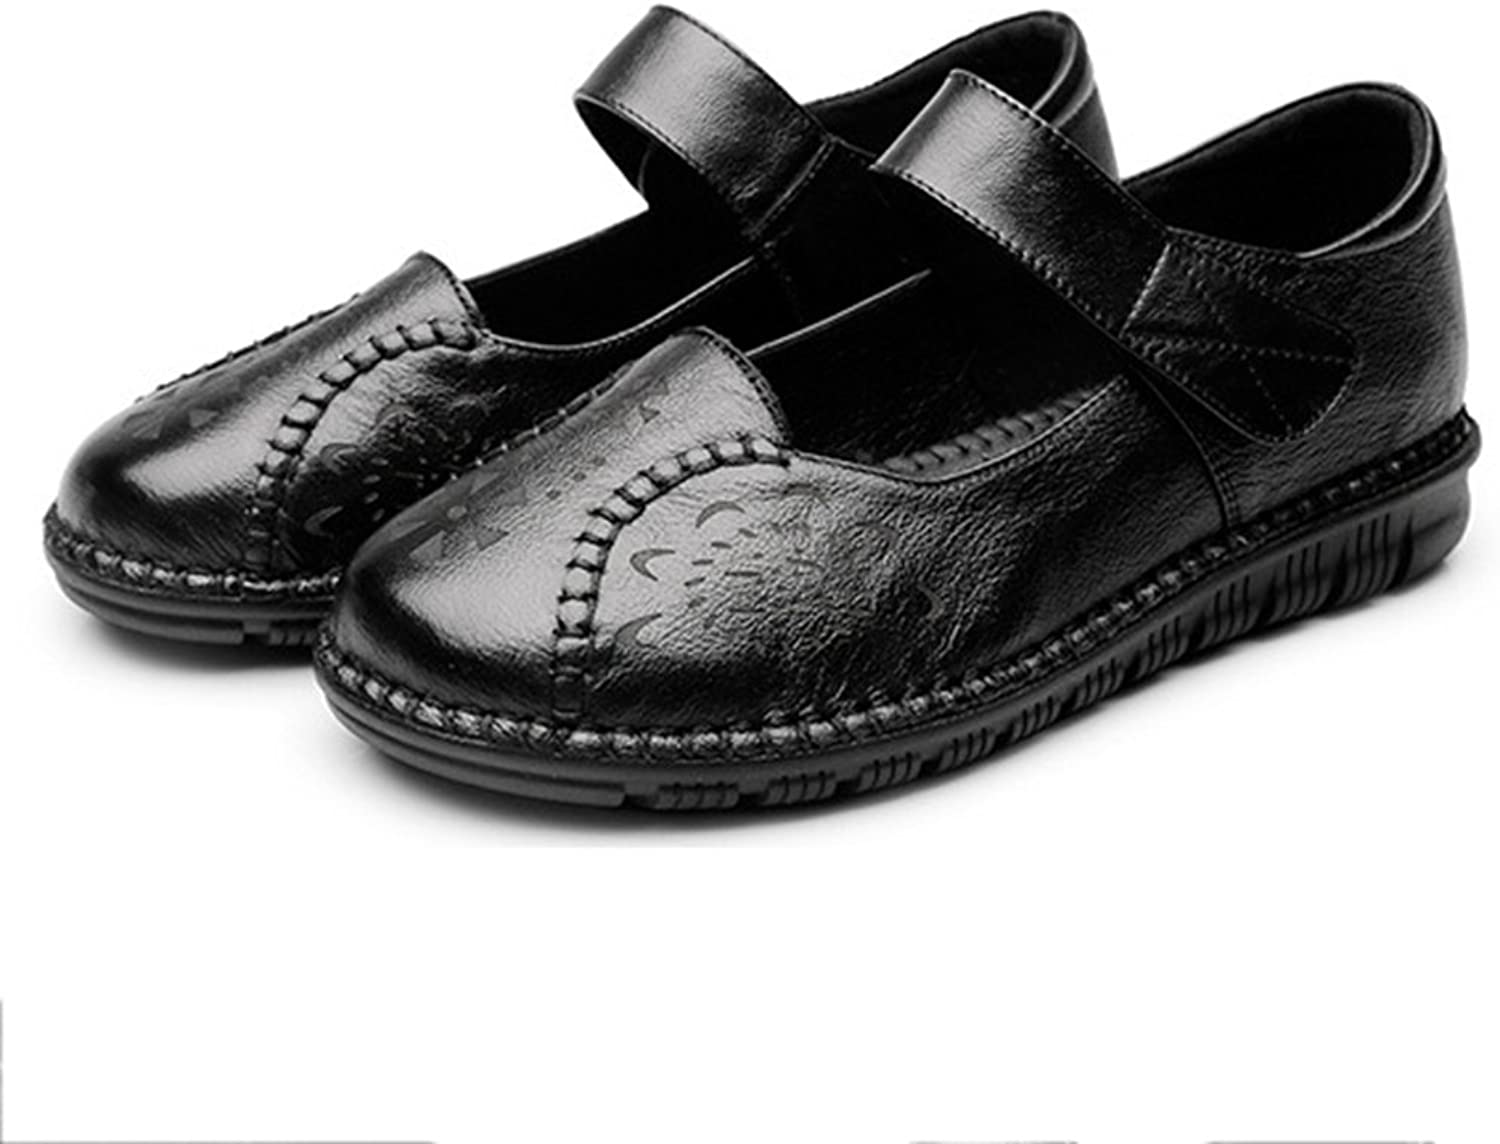 Btrada Women's Slip On Loafers shoes Round Toe Handmade Antiskid Driving Moccasins Flat Mary-Jane shoes